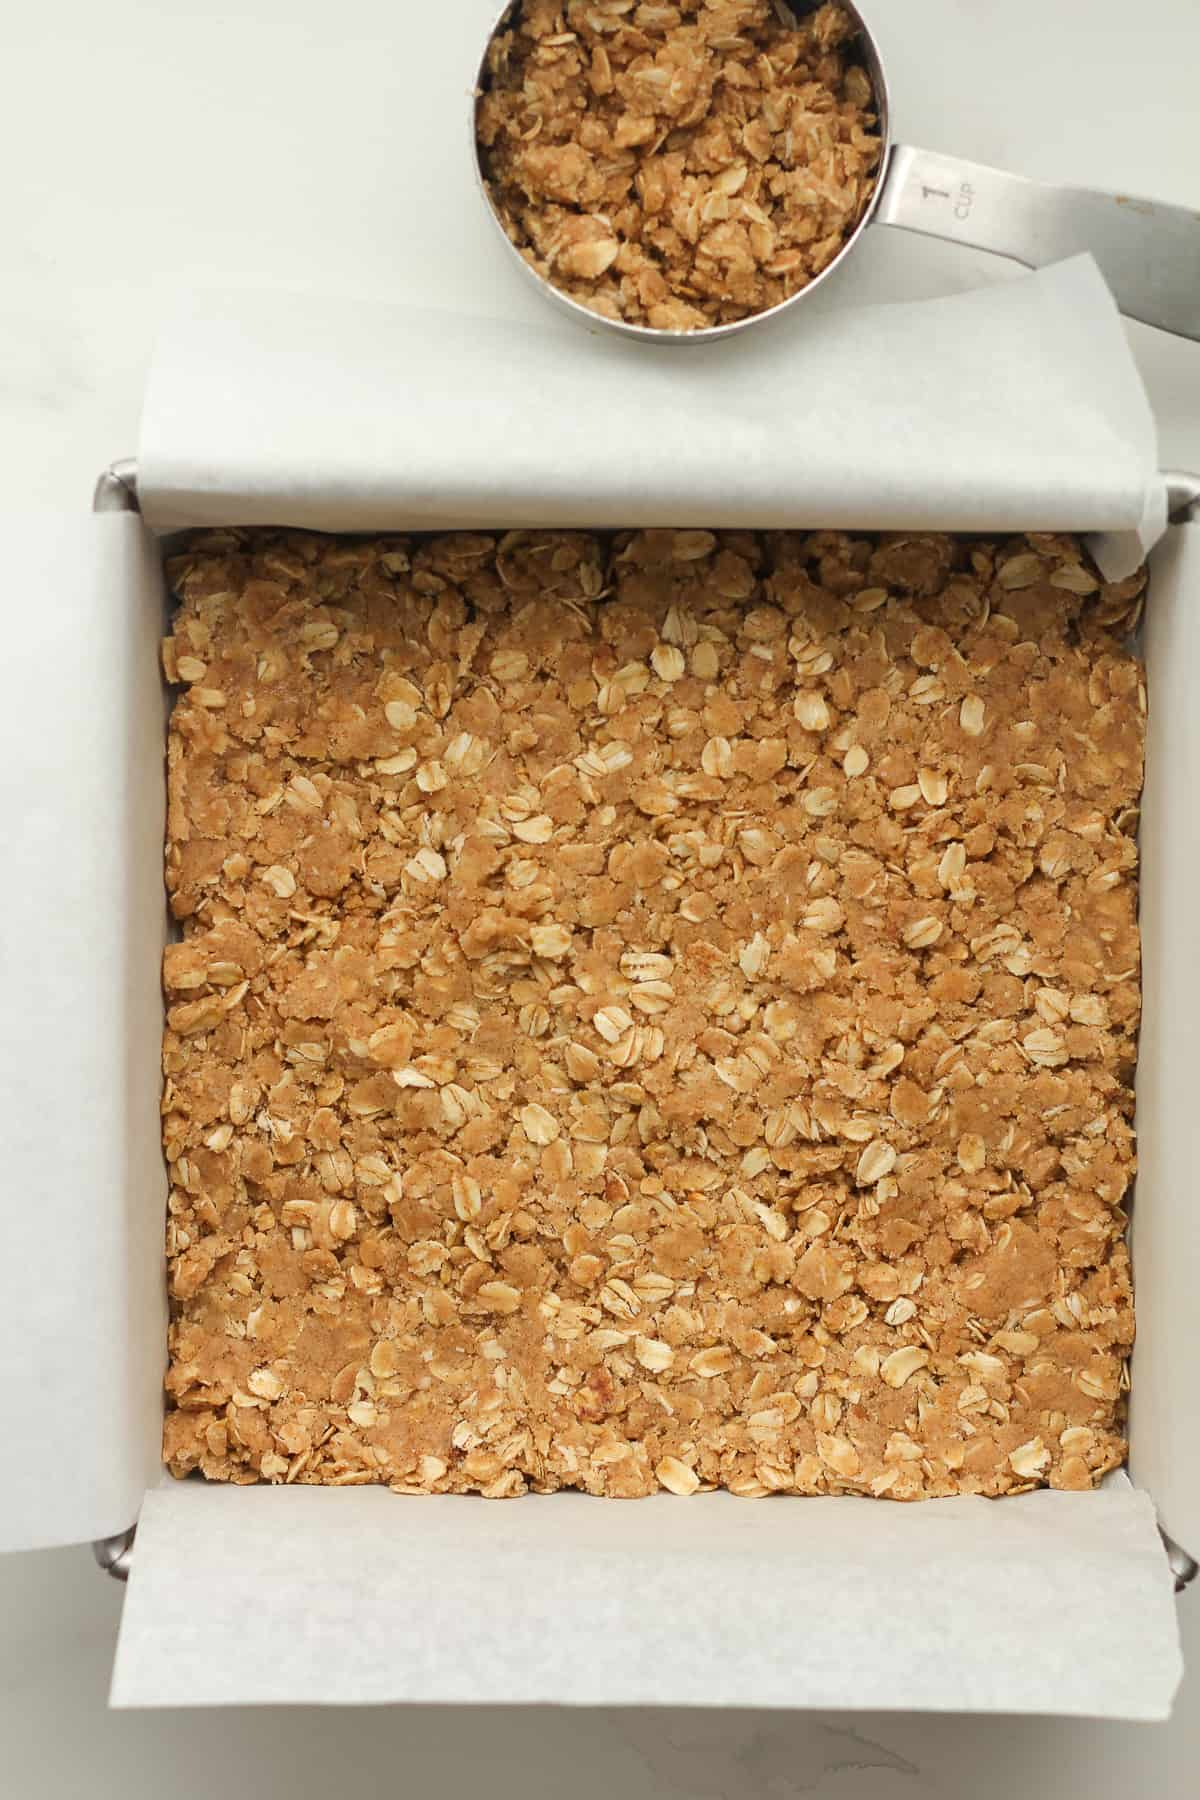 A pan of the pressed crumble layer.